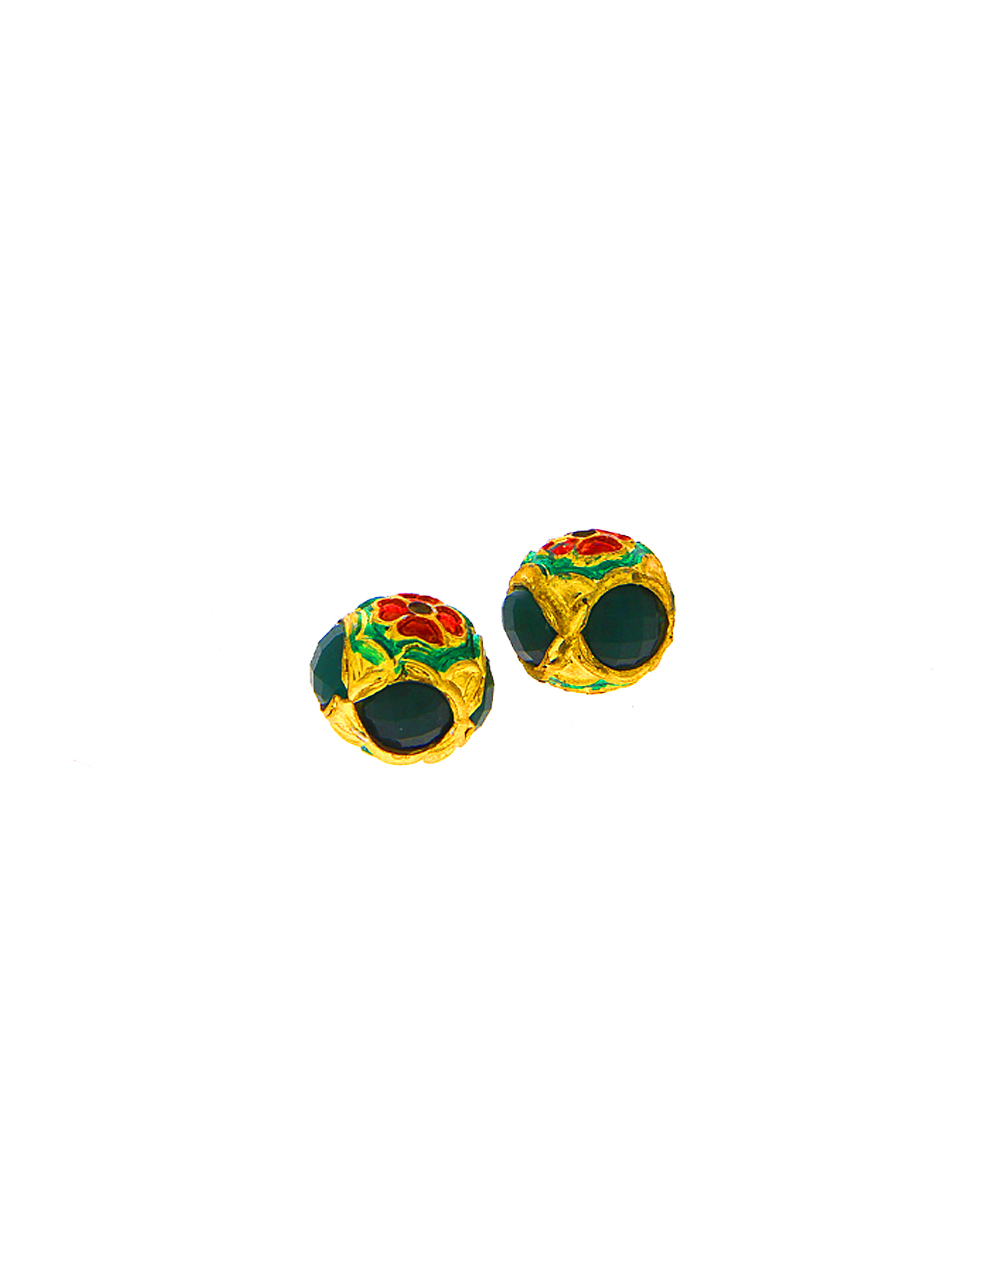 Green Colour Jewellery Making Material